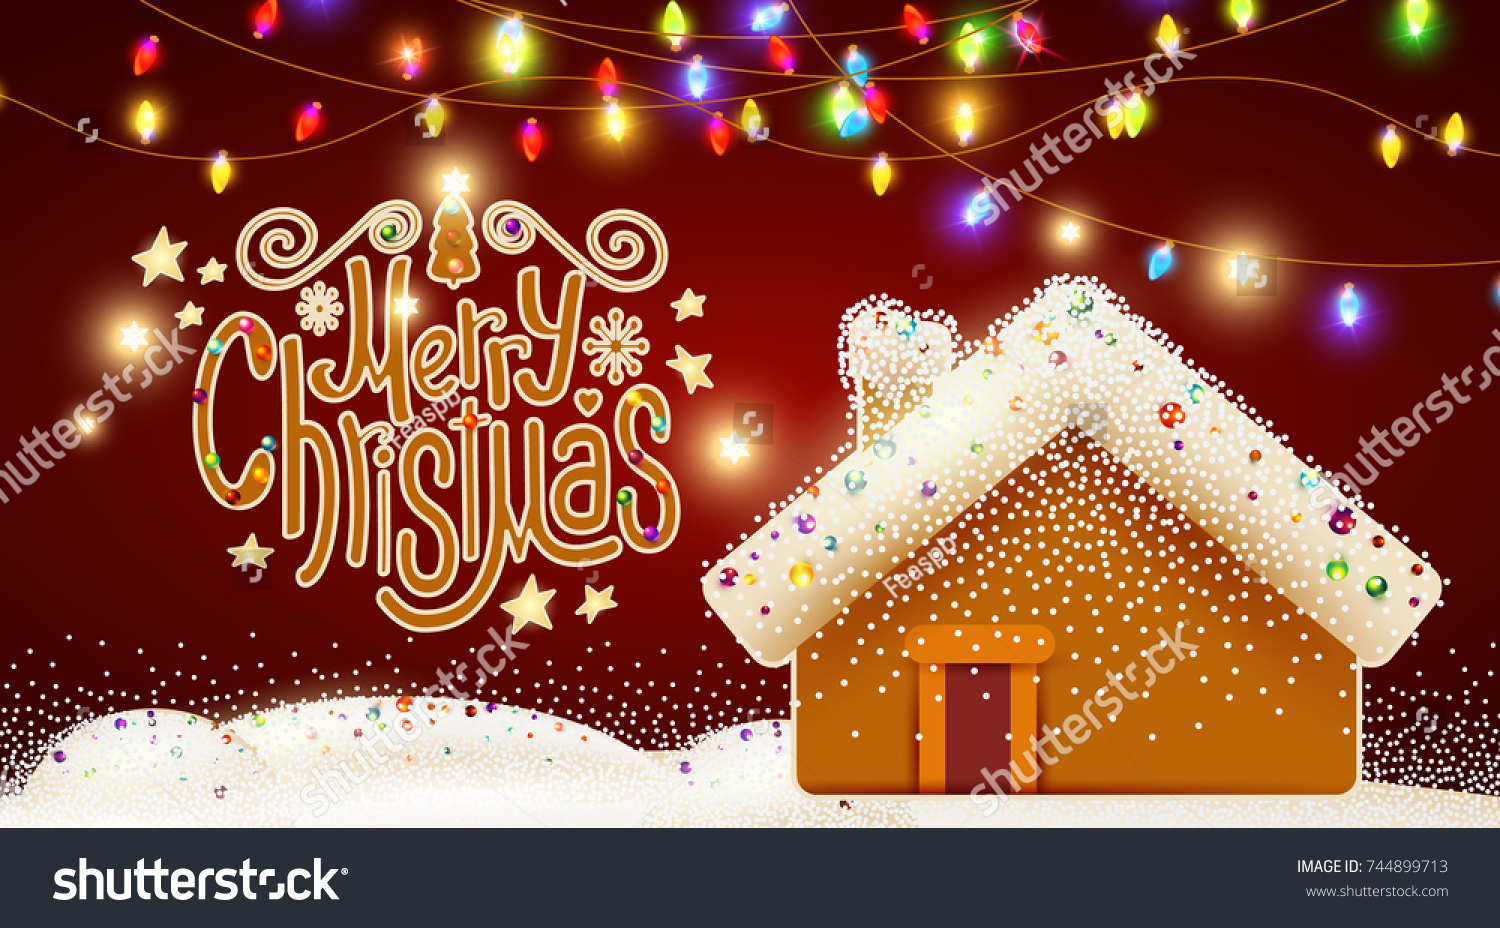 Merry Christmas Cute Background With Candy Lettering Gingerbread House Light Garlands Caramel